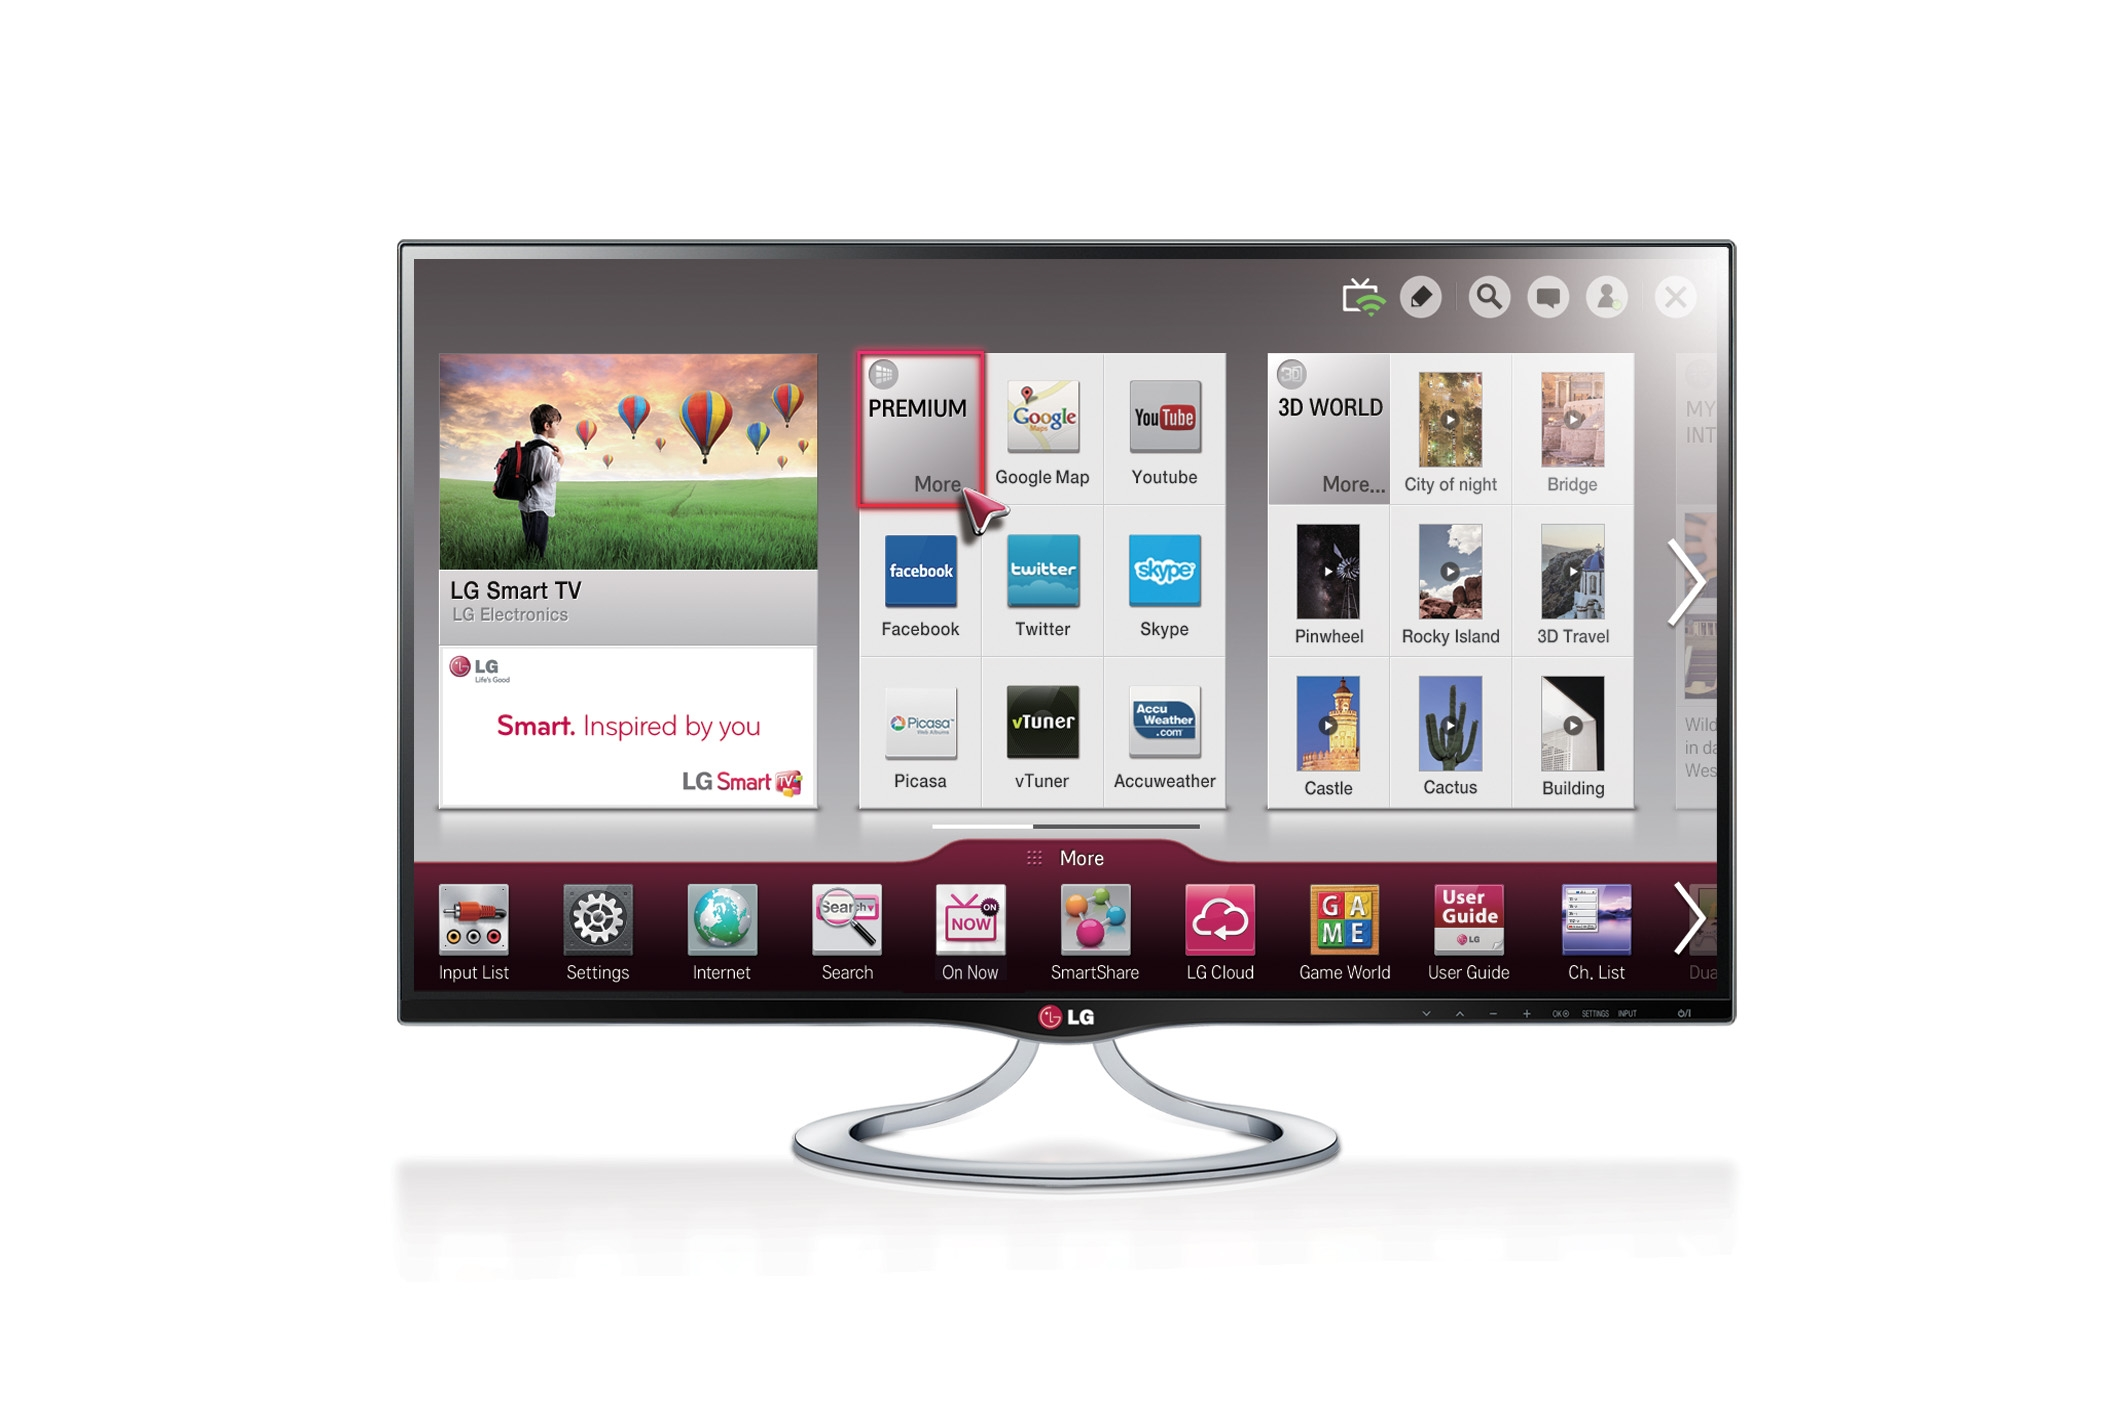 The LG 27-inch IPS Personal Smart TV model MT93 displaying the Smart Home platform on screen